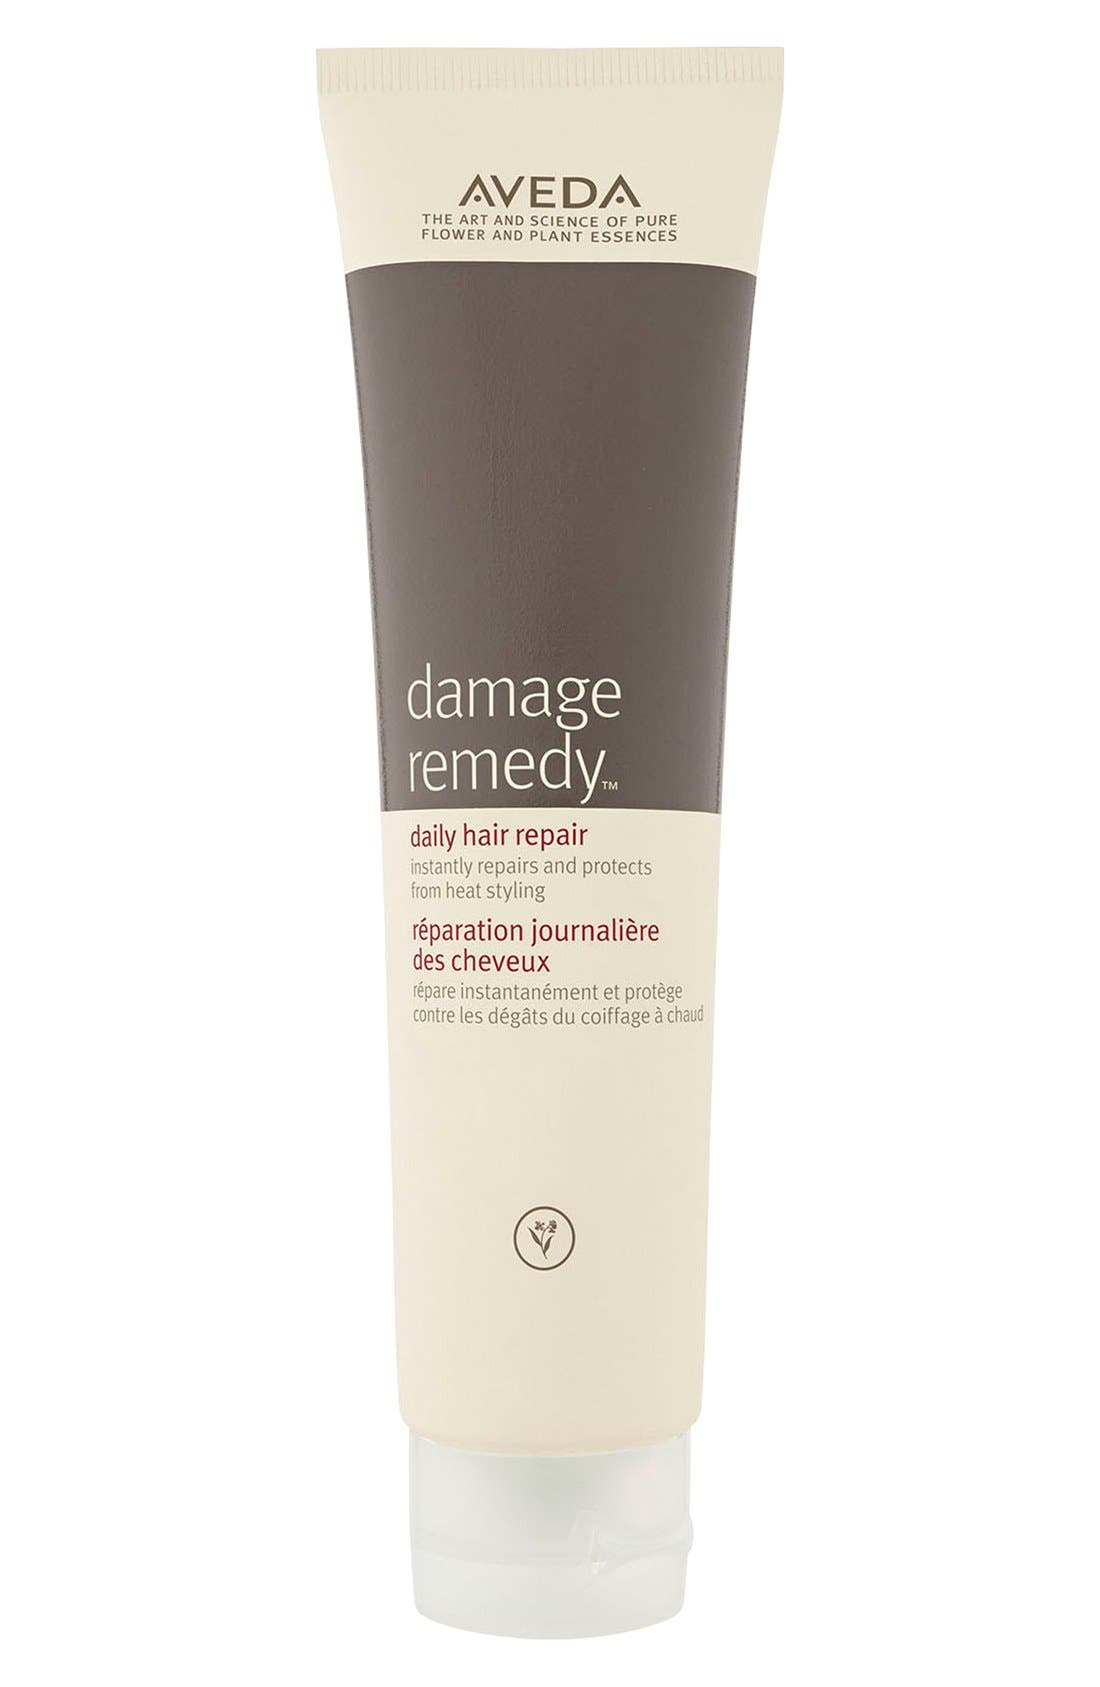 Aveda damage remedy™ Daily Hair Repair